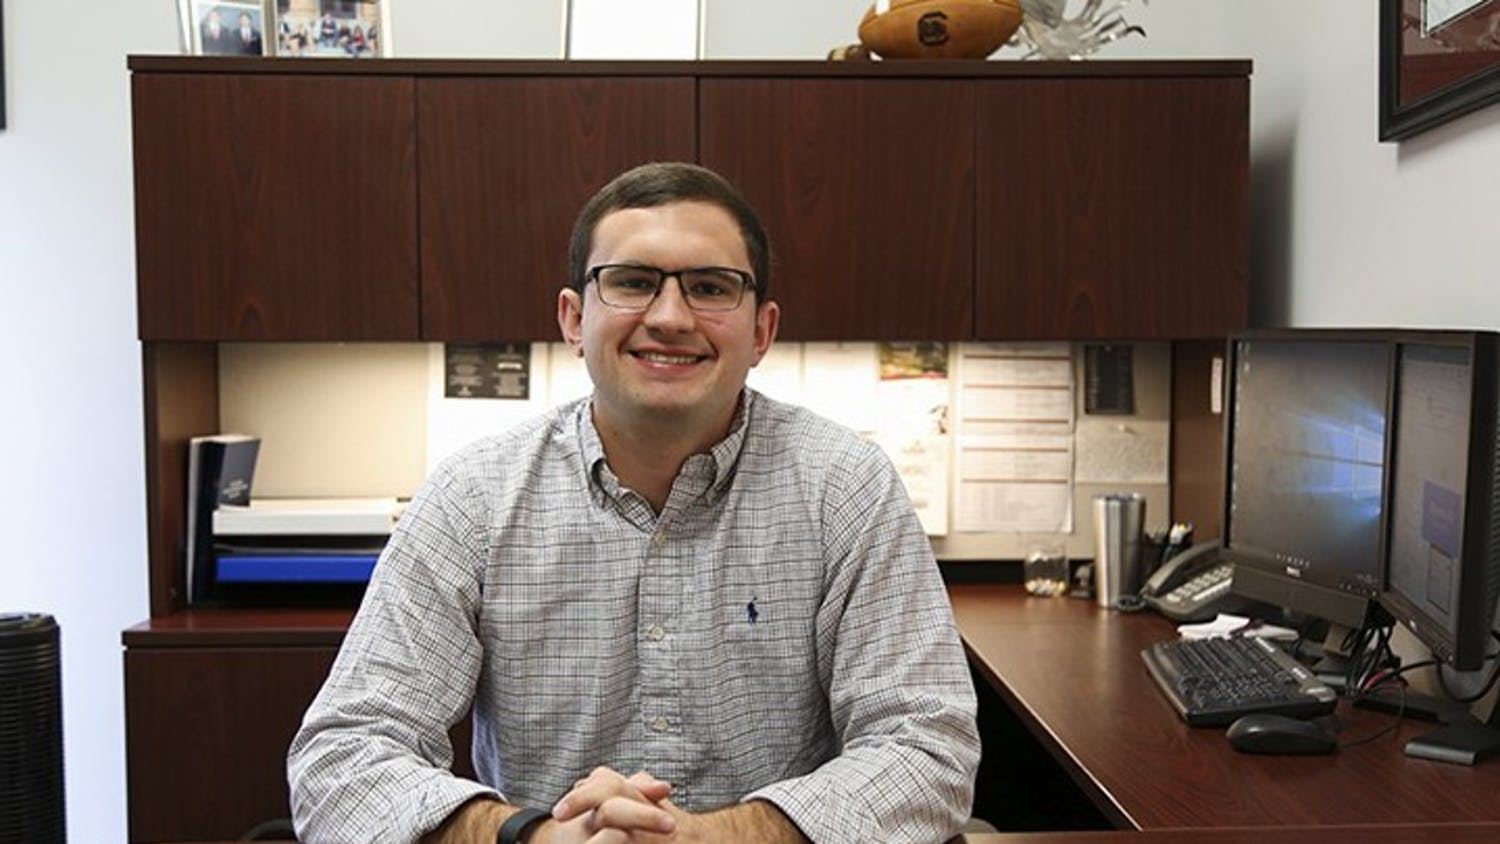 Former Student Body President Ross Lordo sits at his desk while his name plaque is displayed. In his letter, Lordo reflected on athletic achievements, the Cockstock concert and Dance Marathon.